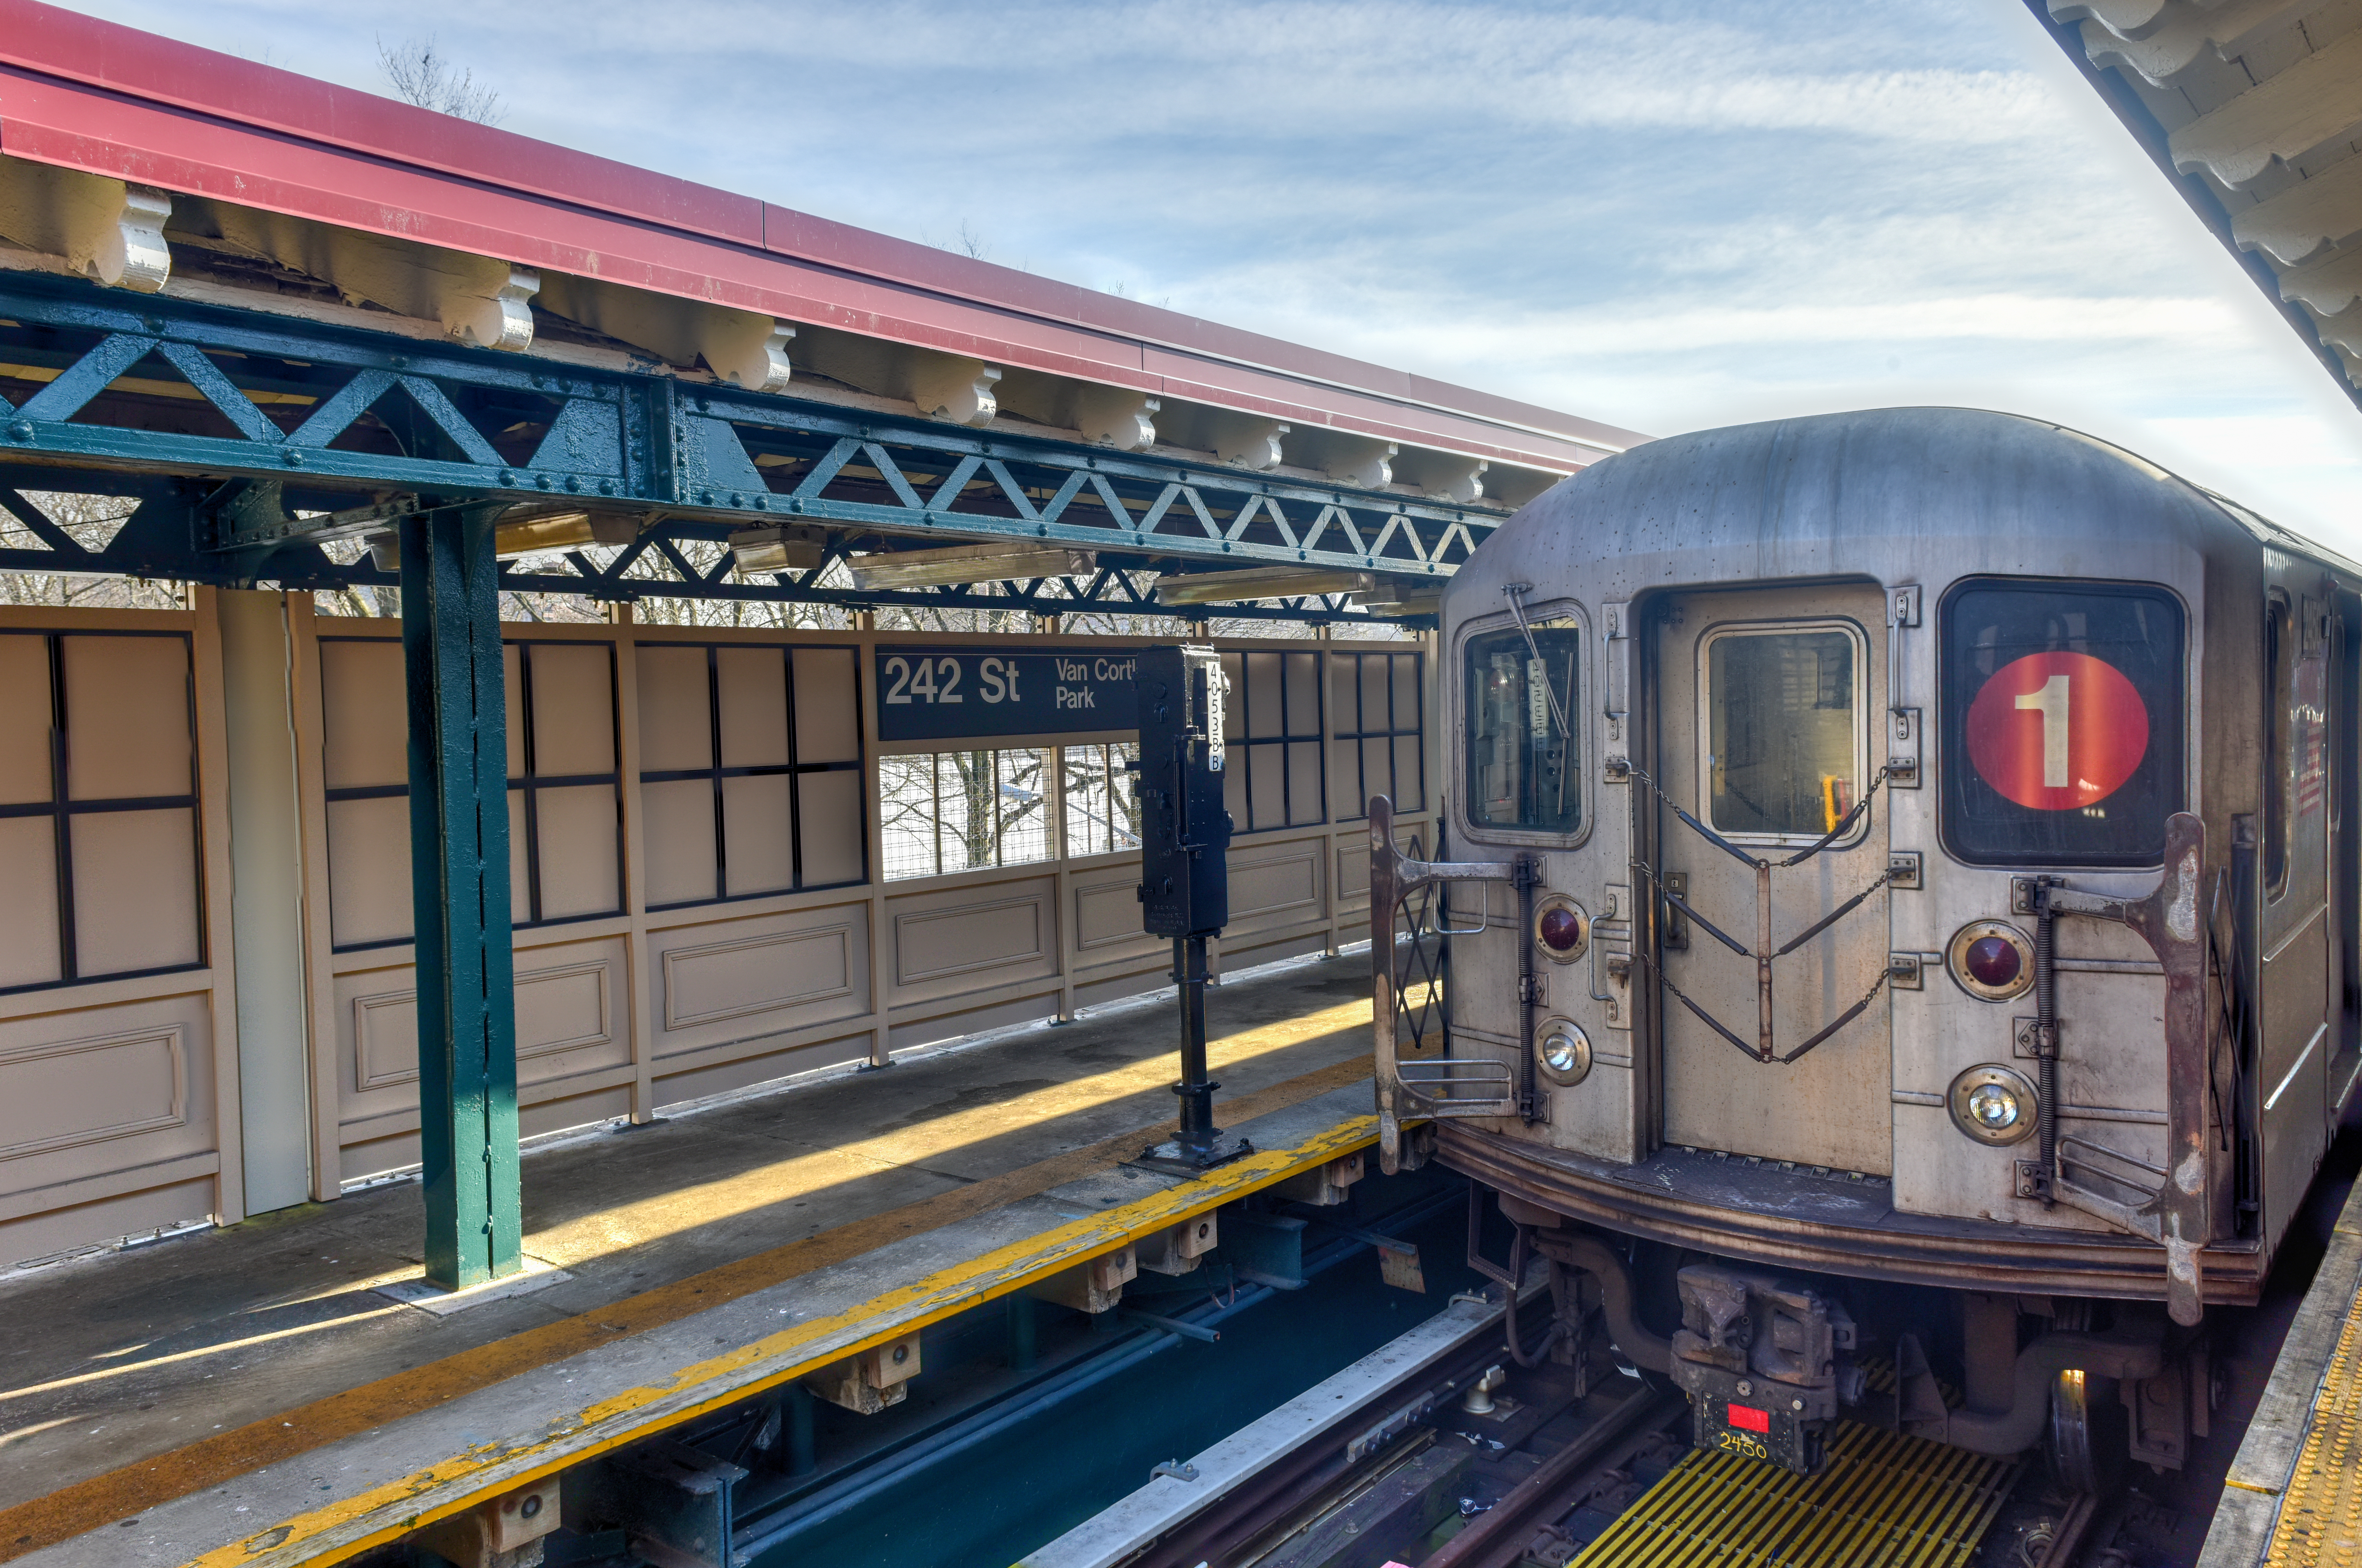 MTA service changes will hammer 1, 2, and 3 lines for six weekends